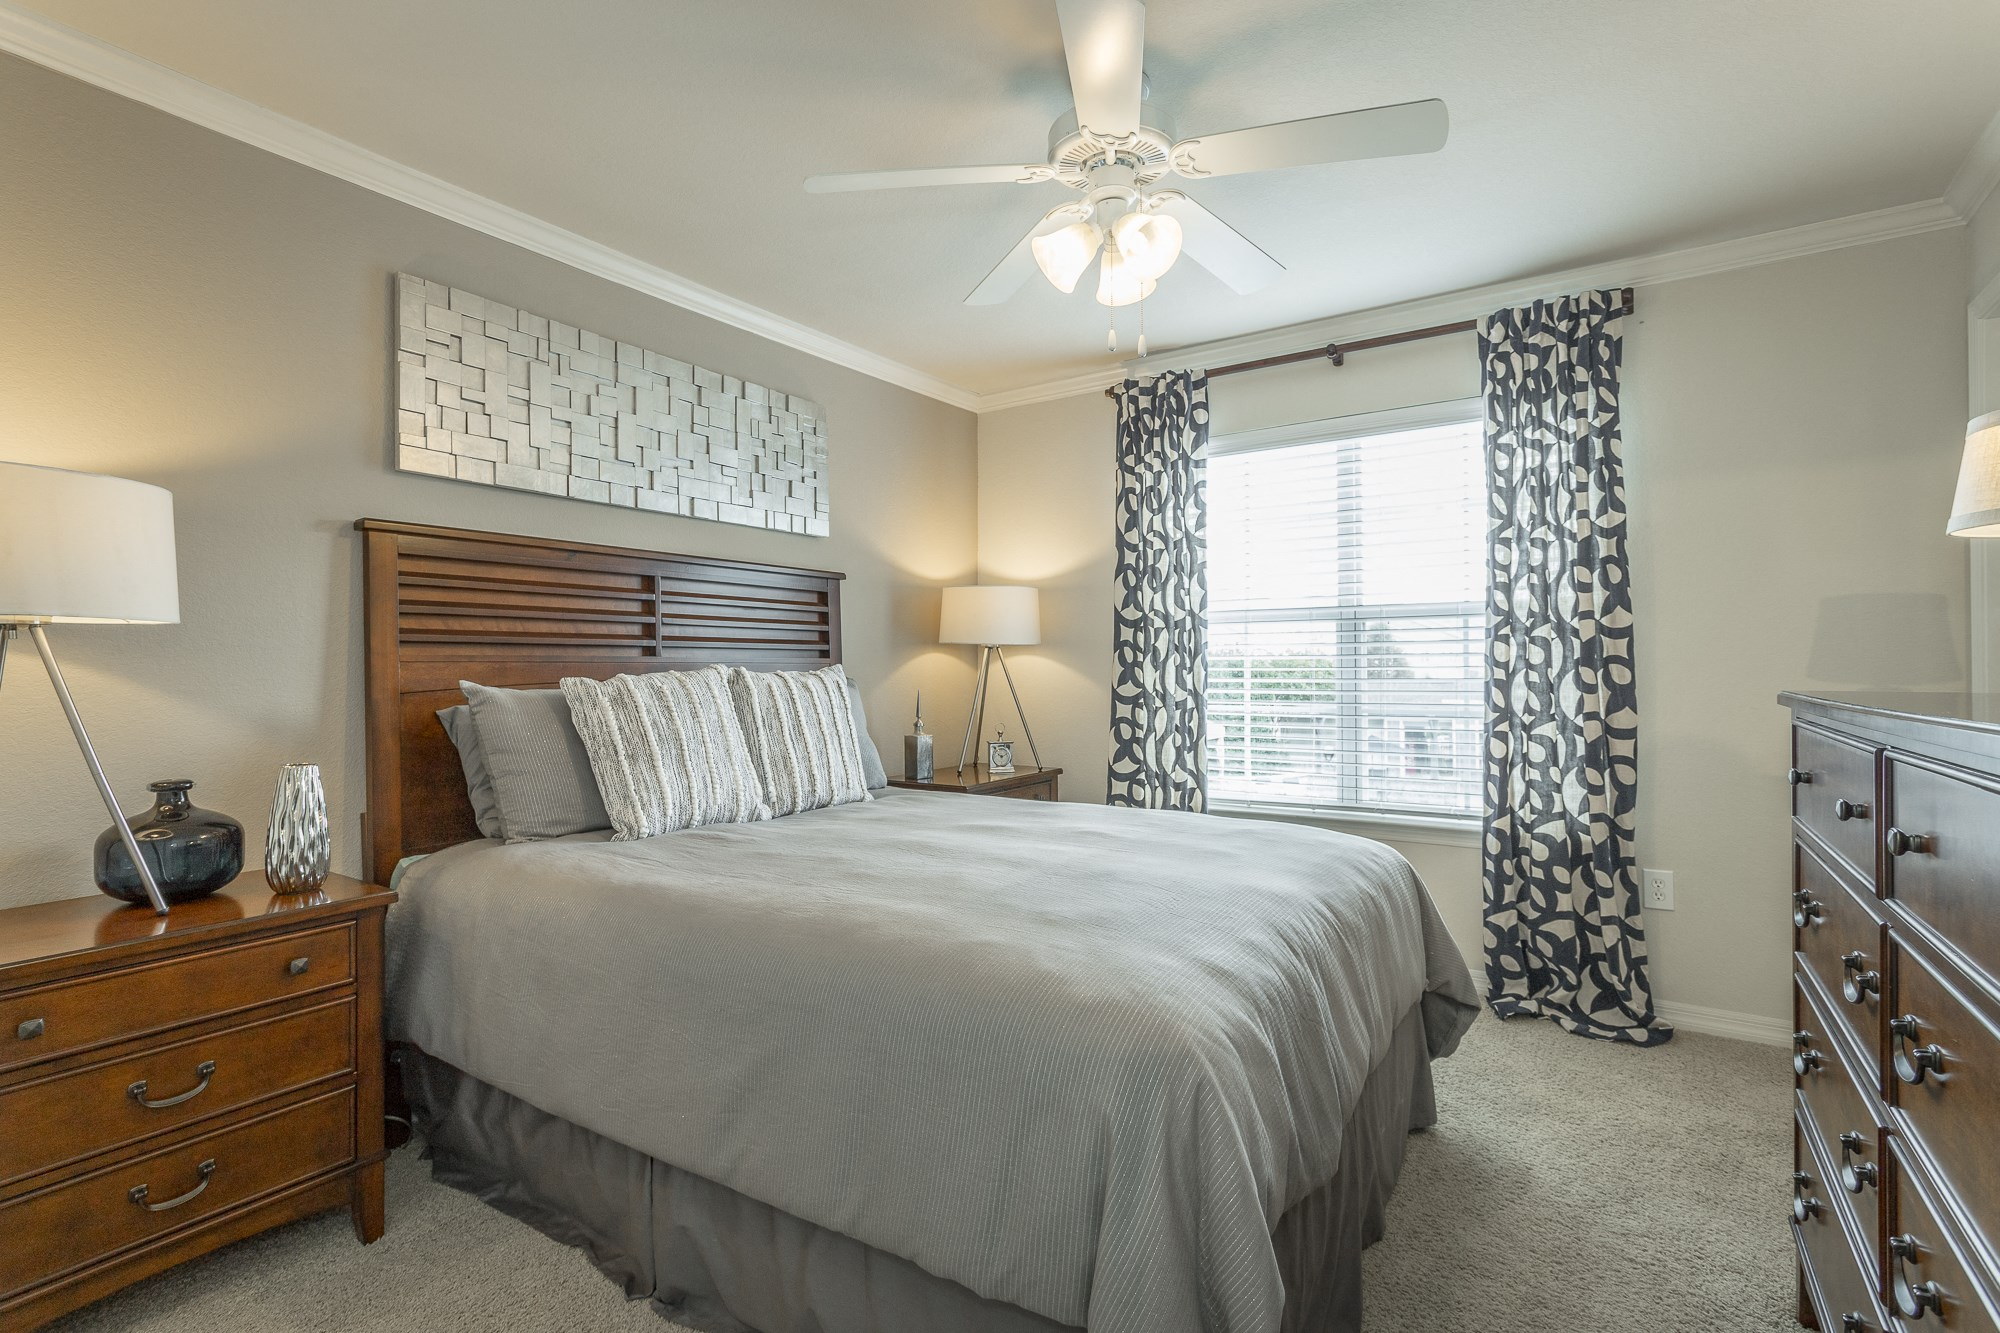 Beautiful bedroom at Amberleigh Ridge with plush carpeting, overhead lighting, designer ceiling fan and large windows